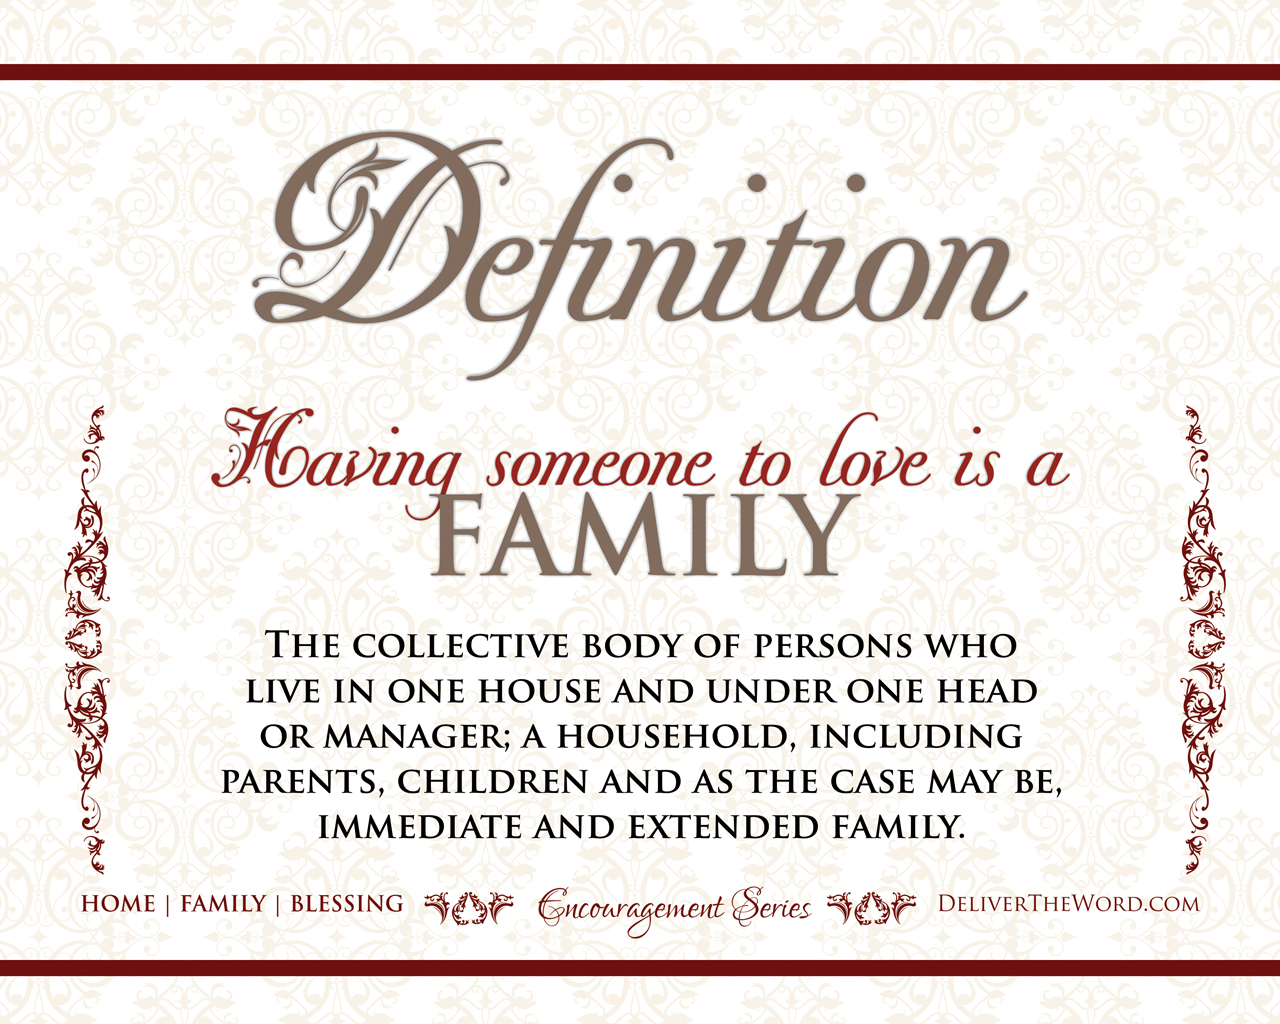 Definitions | Home, Family & Blessing